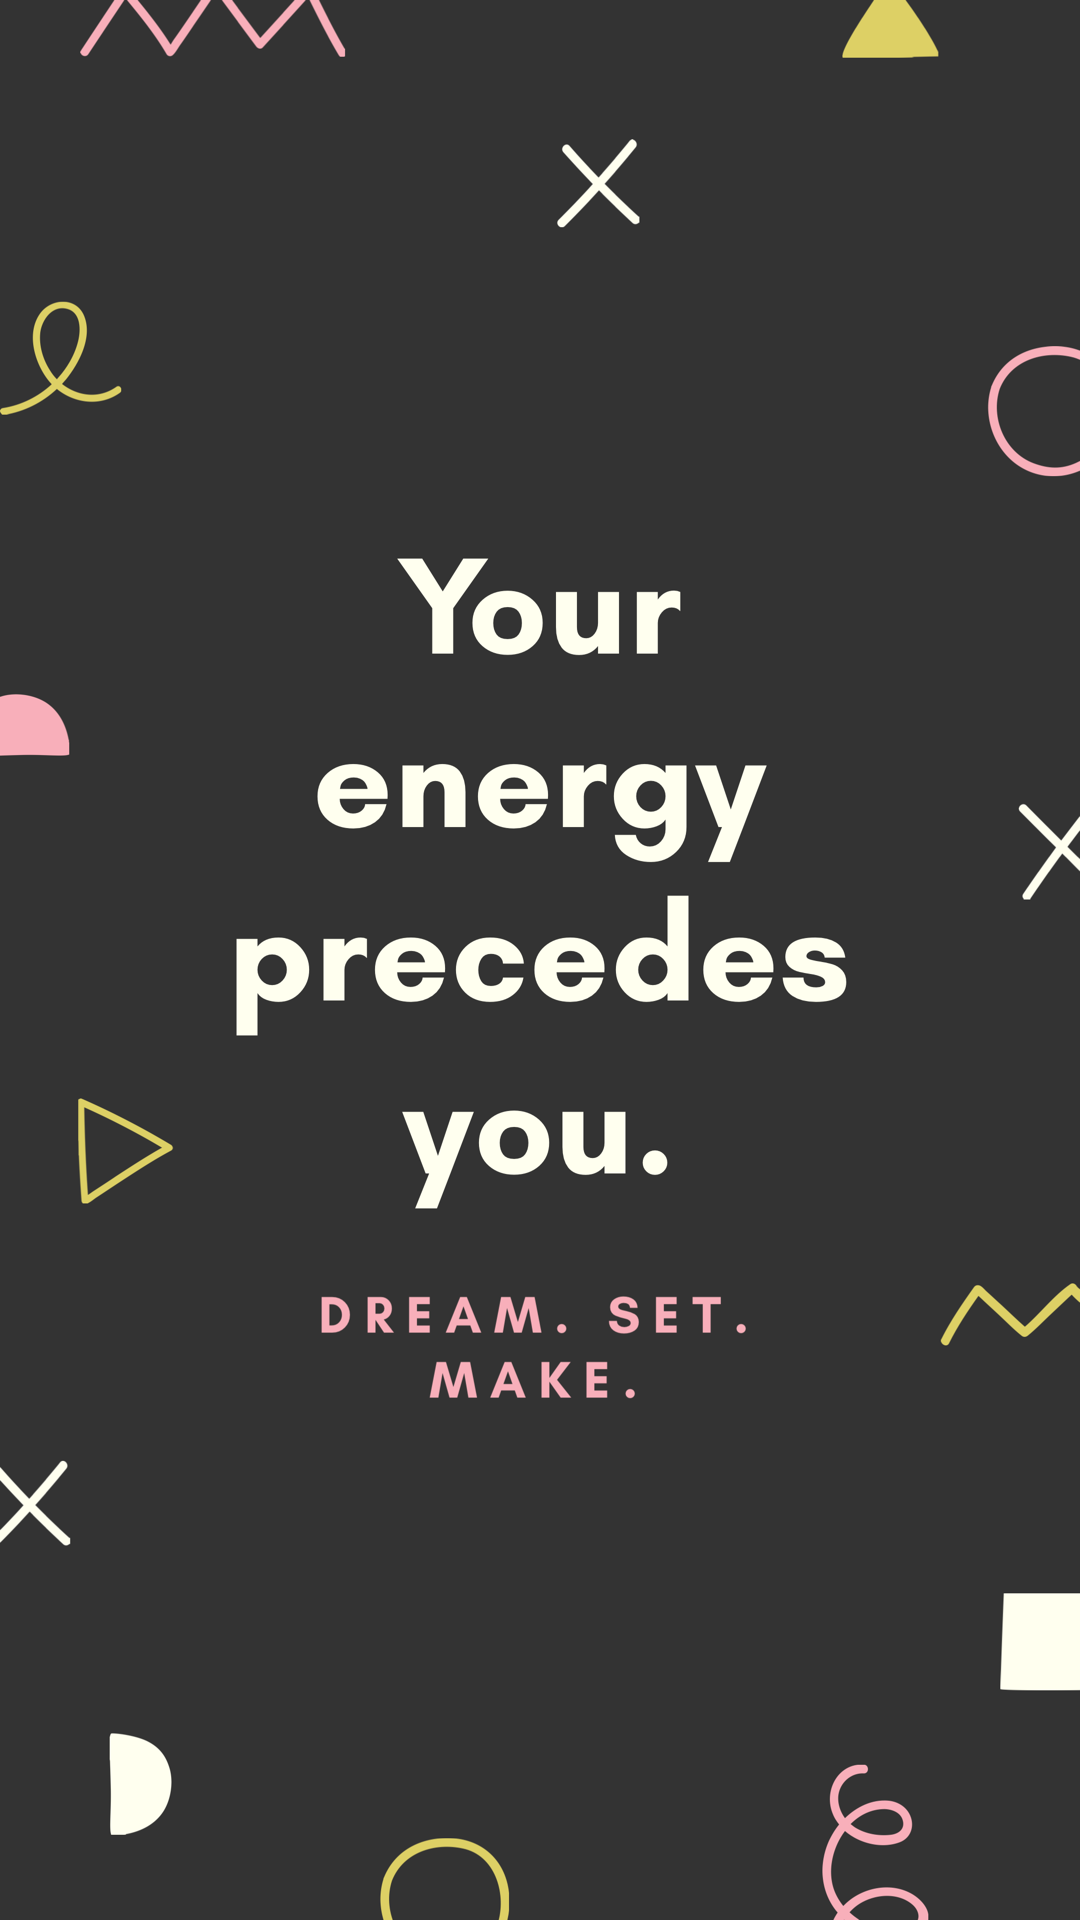 Your energy.